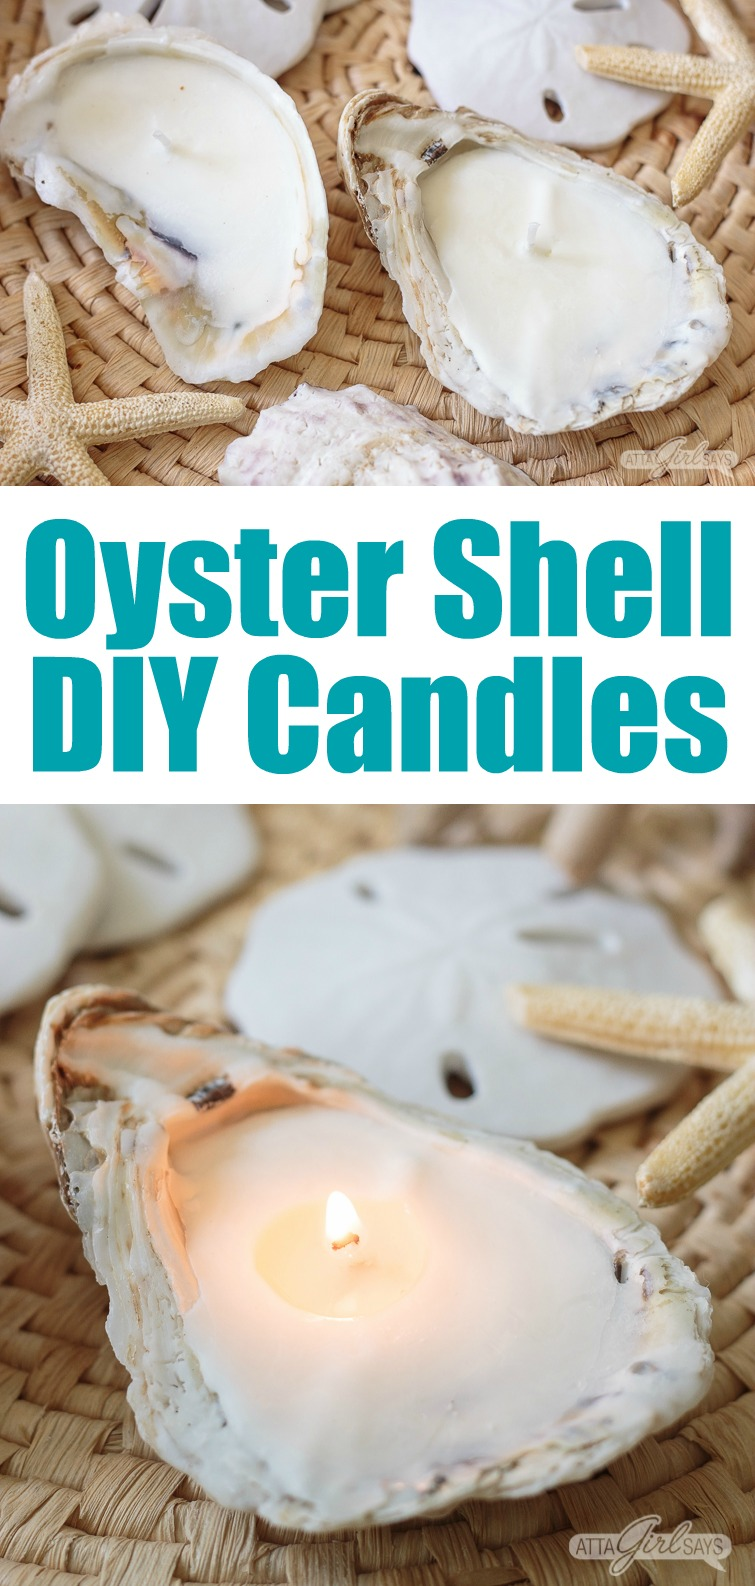 collage photo, labeled oyster shell DIY candles, showing a grouping of oyster shell candles on a woven seagrass mat with sand dollars and starfish in the background